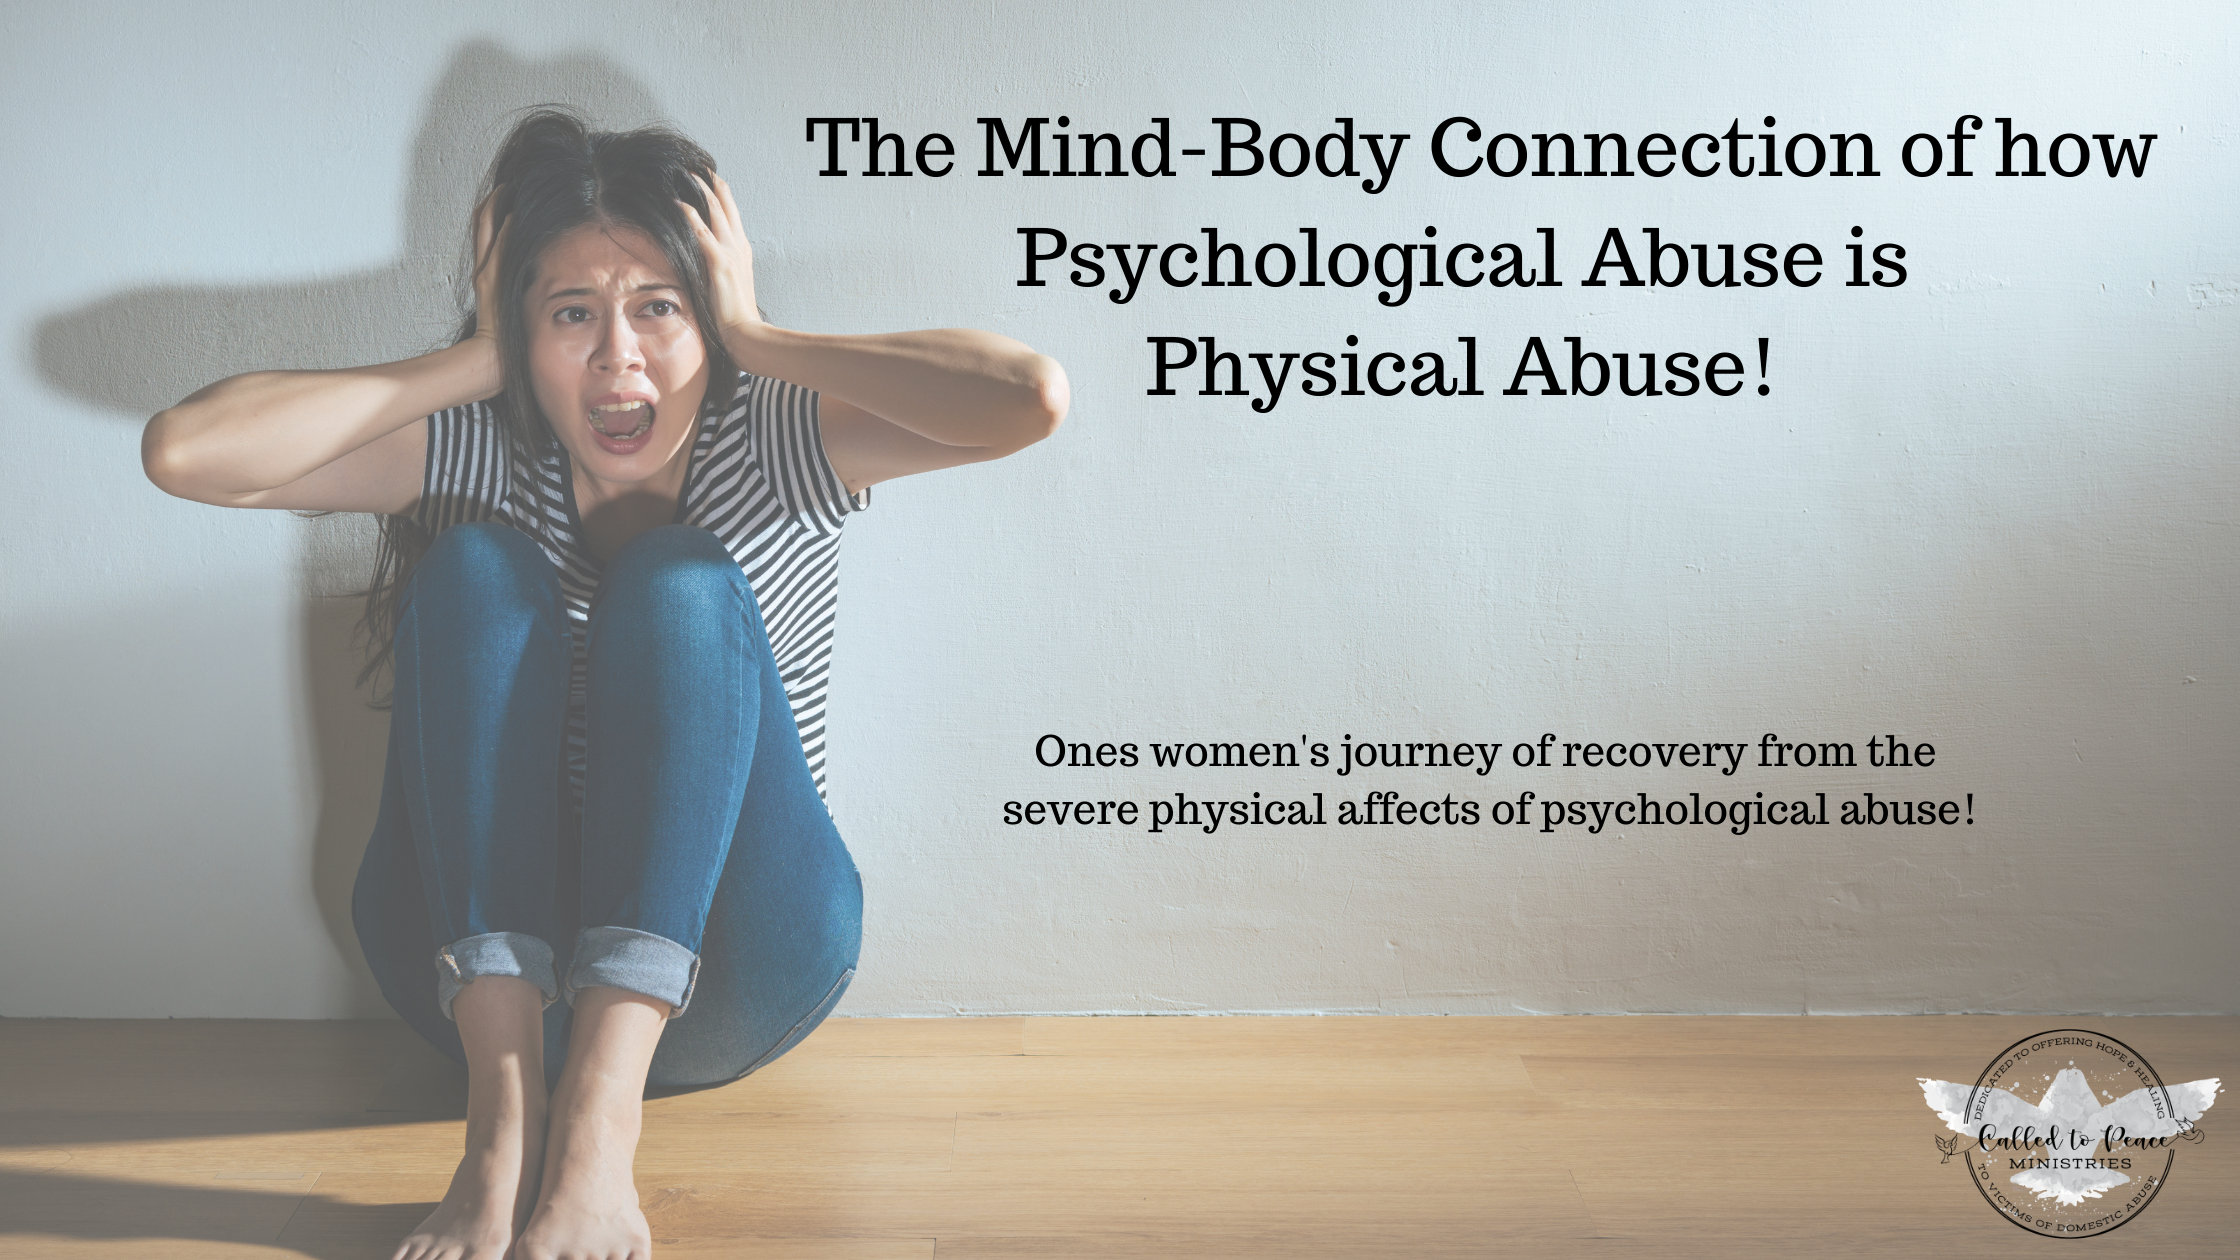 The Mind-Body Connection – Psychological Abuse is Physical Abuse!